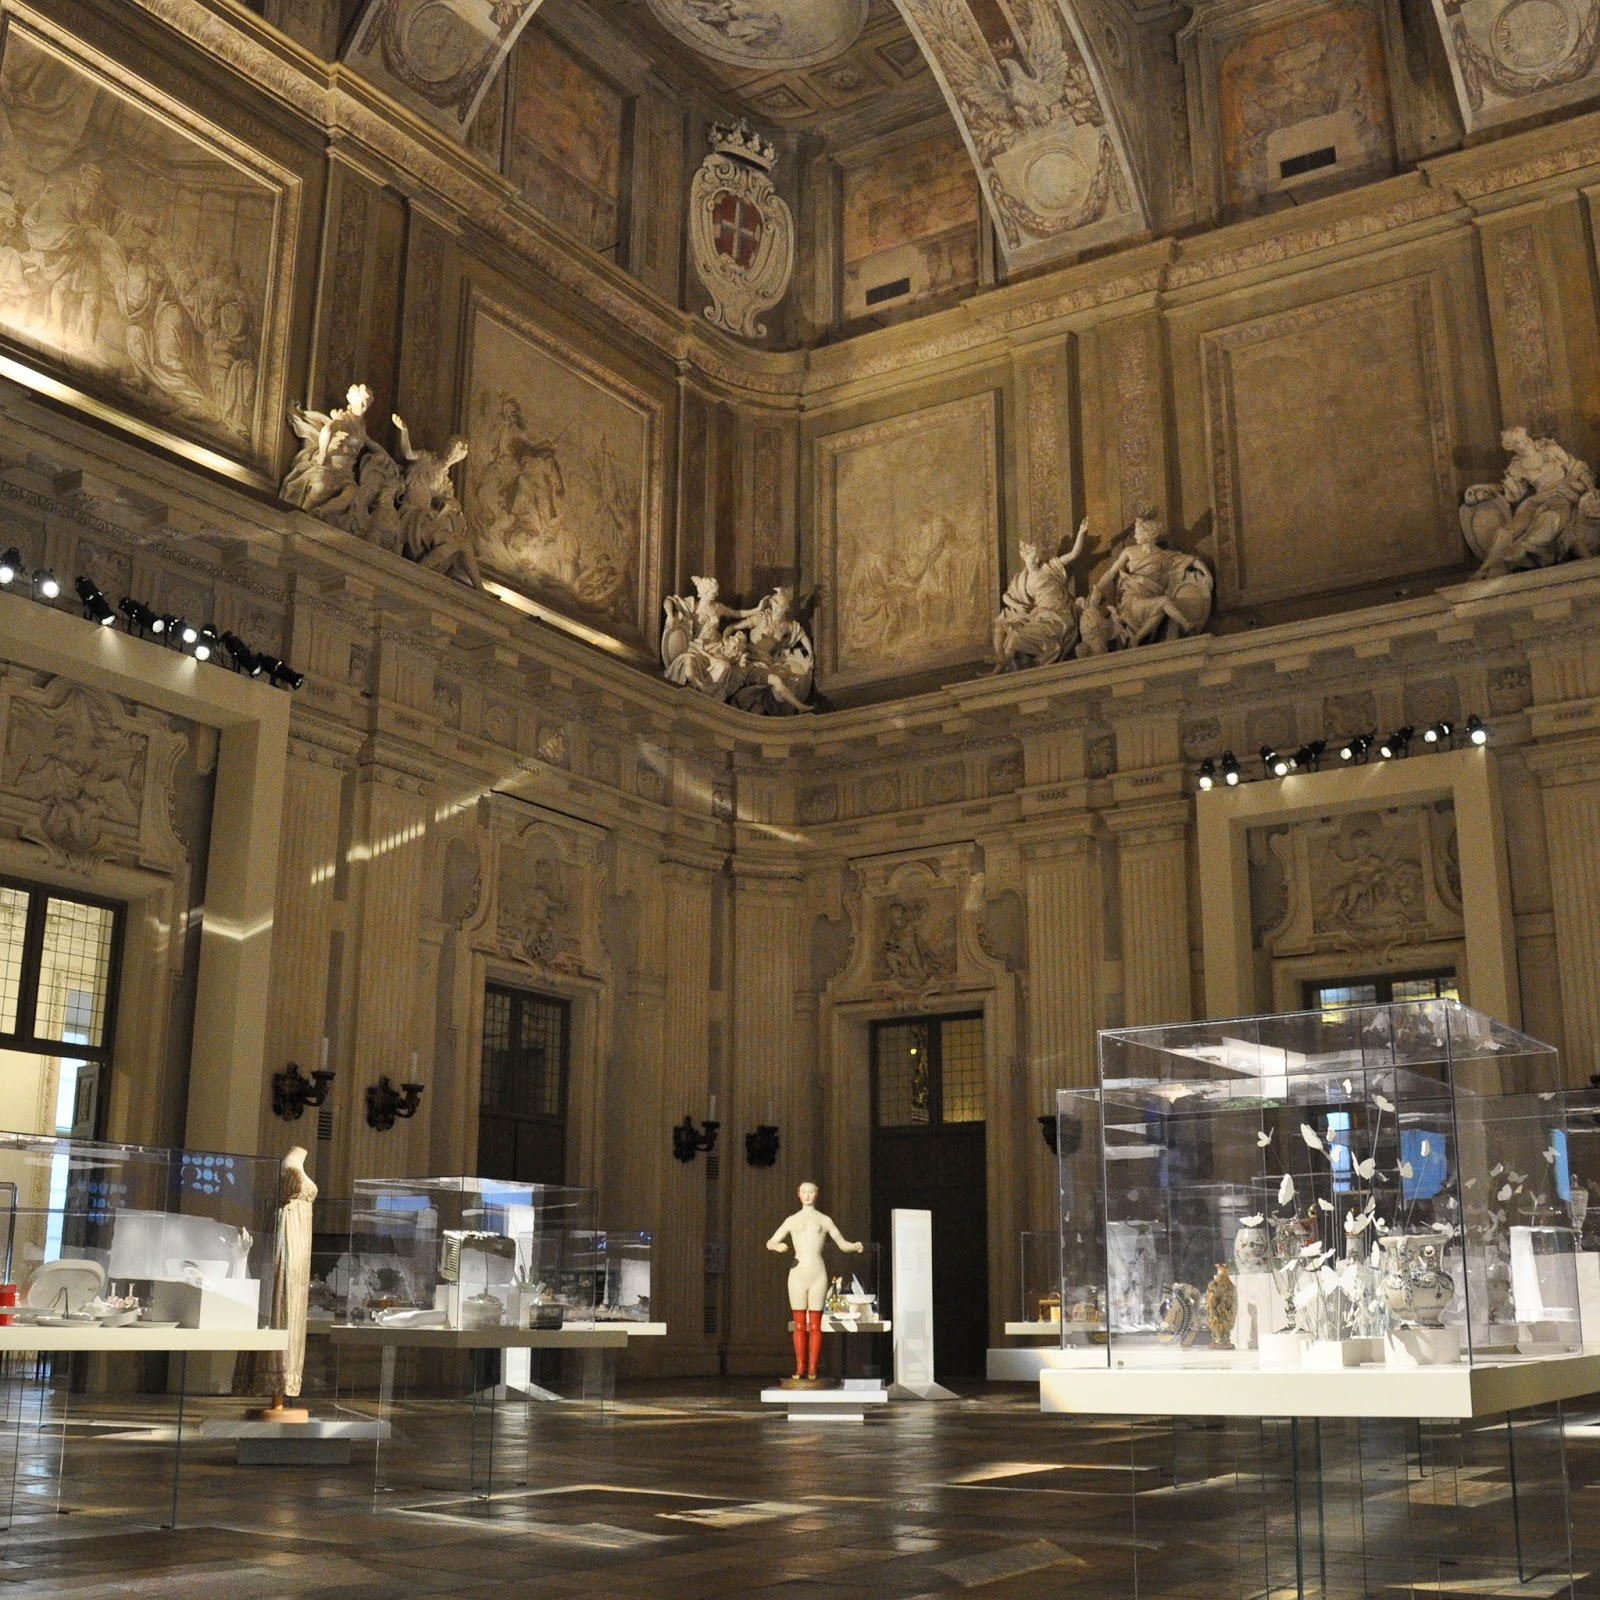 An exhibition in the ball room, First floor, Palazzo Madama, Turin, Italy